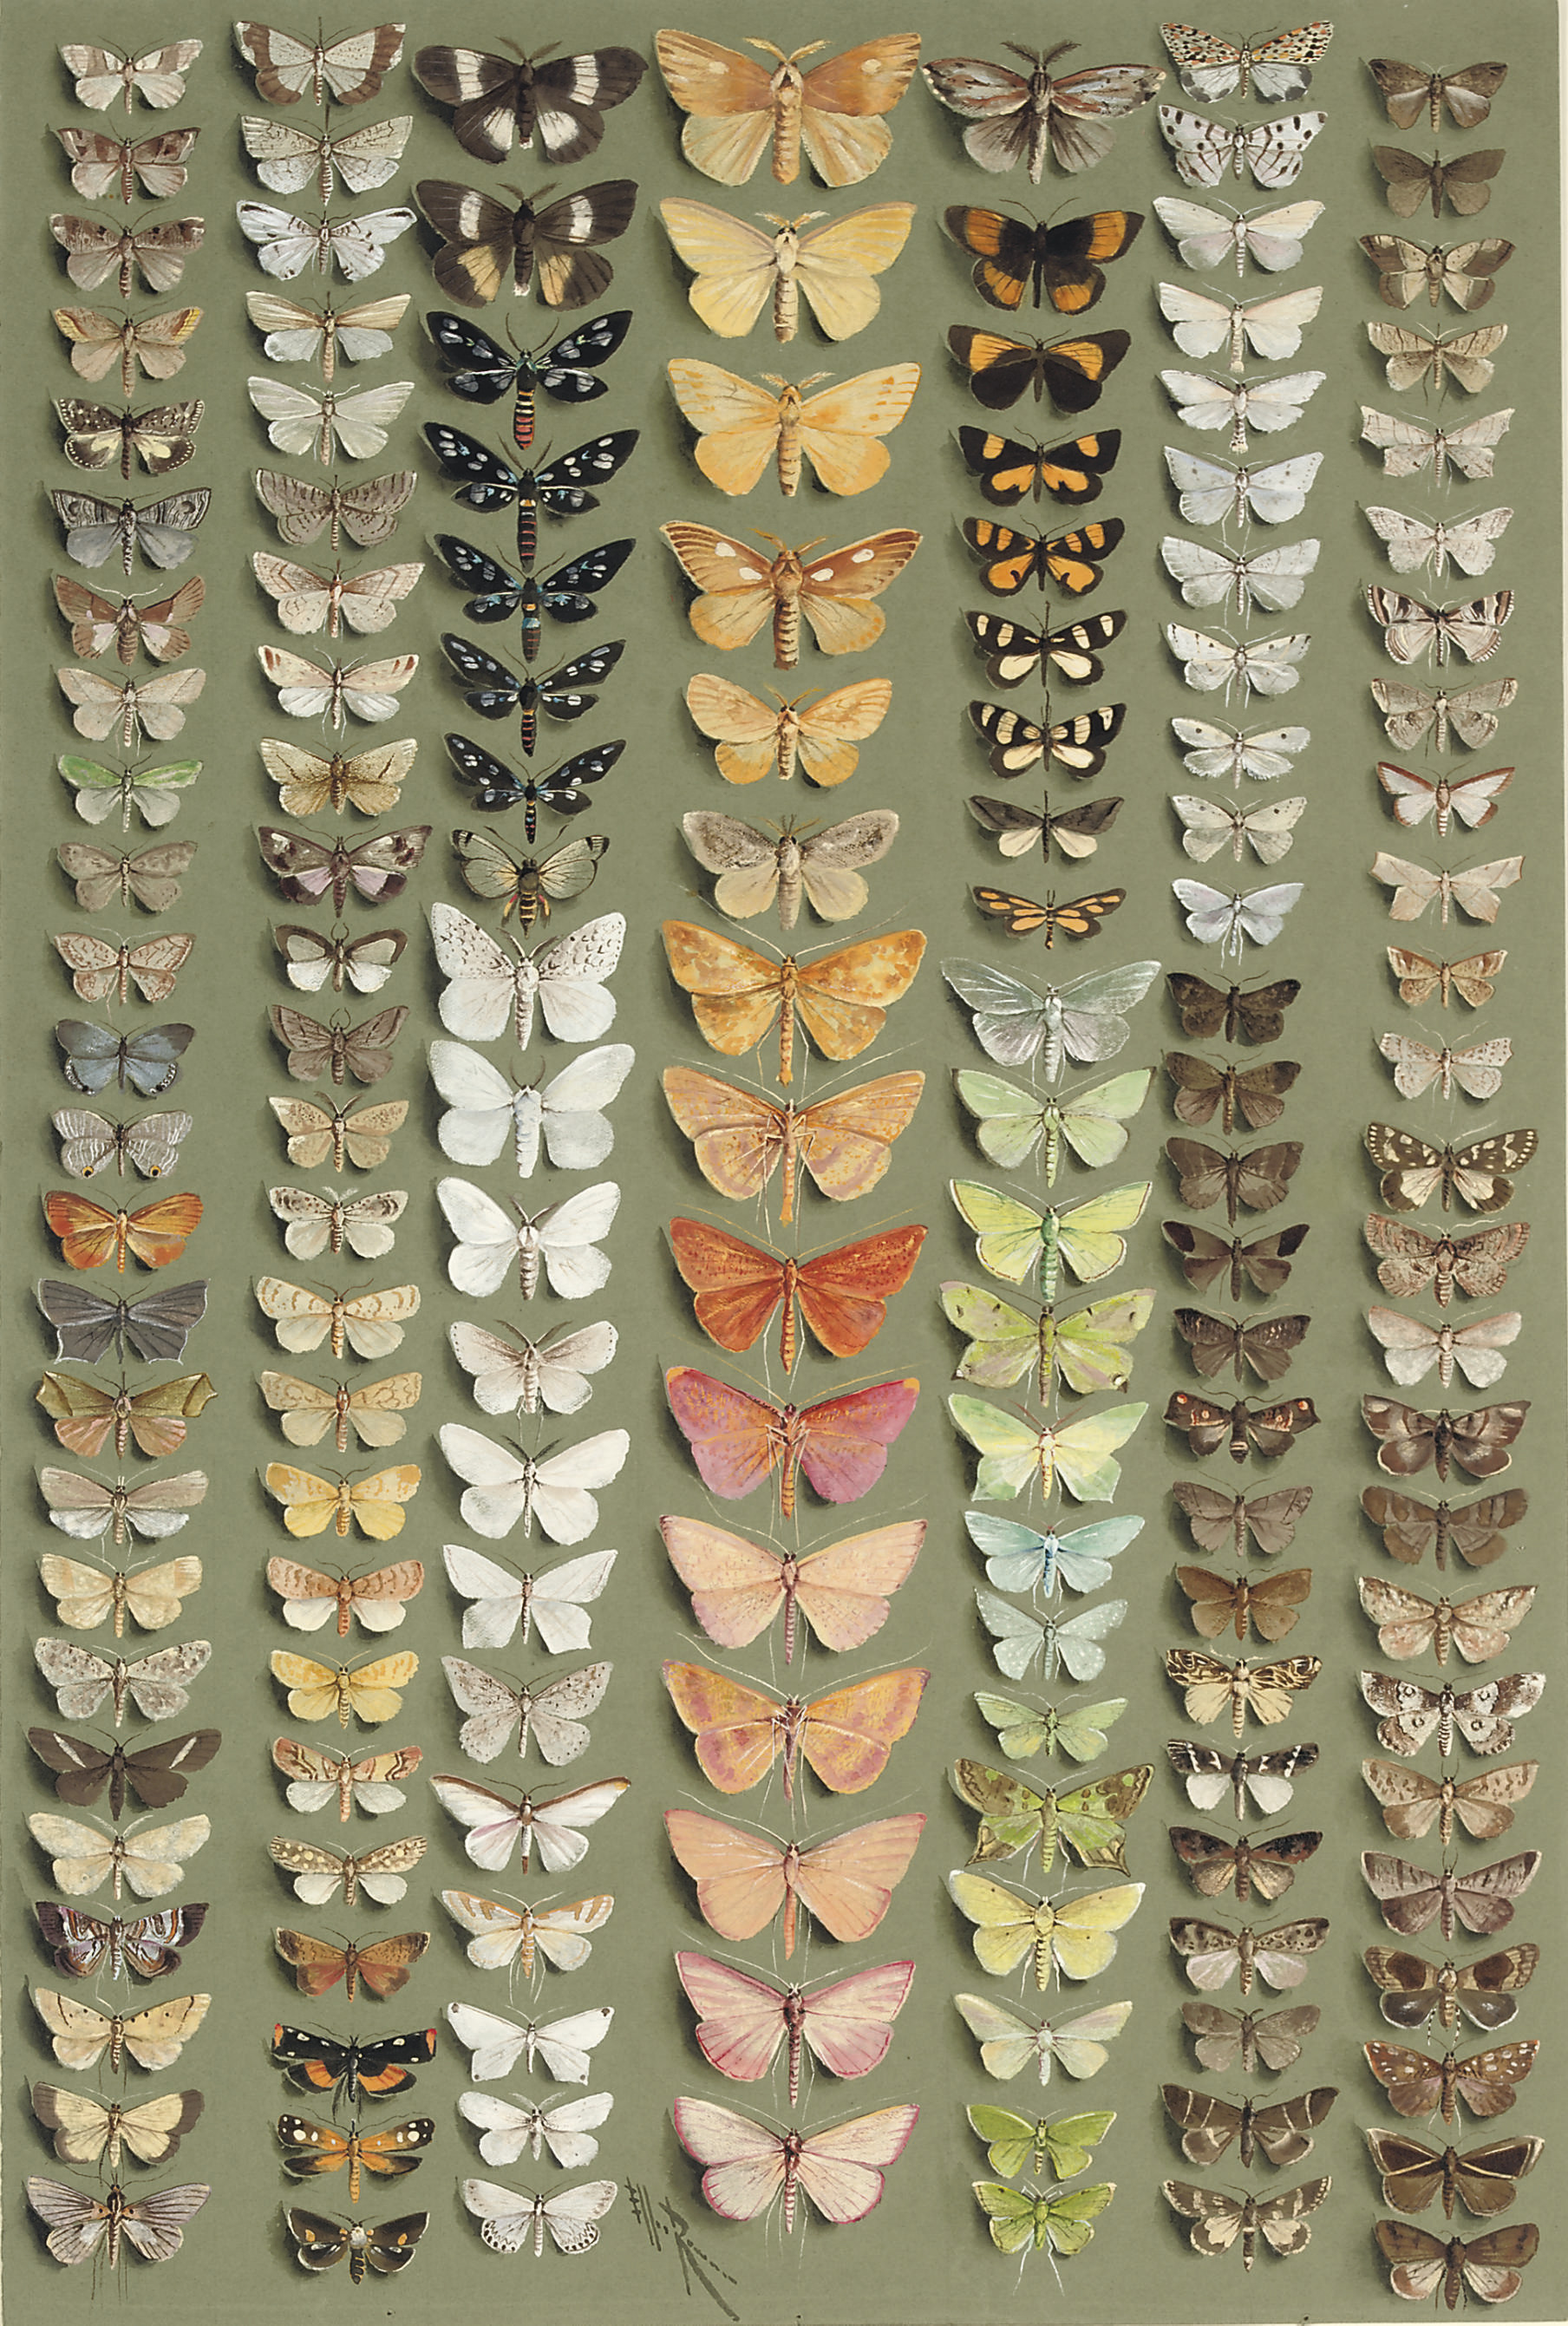 One hundred and fifty-eight medium- and small-sized moths, in seven columns. A wide range of families is represented, including the NOCTUIDAE, ARCTIIDAE, LASIOCAMPIDAE, LYMANTRIIDAE, GEOMETRIDAE, PYRALIDAE, SESIIDAE, etc.